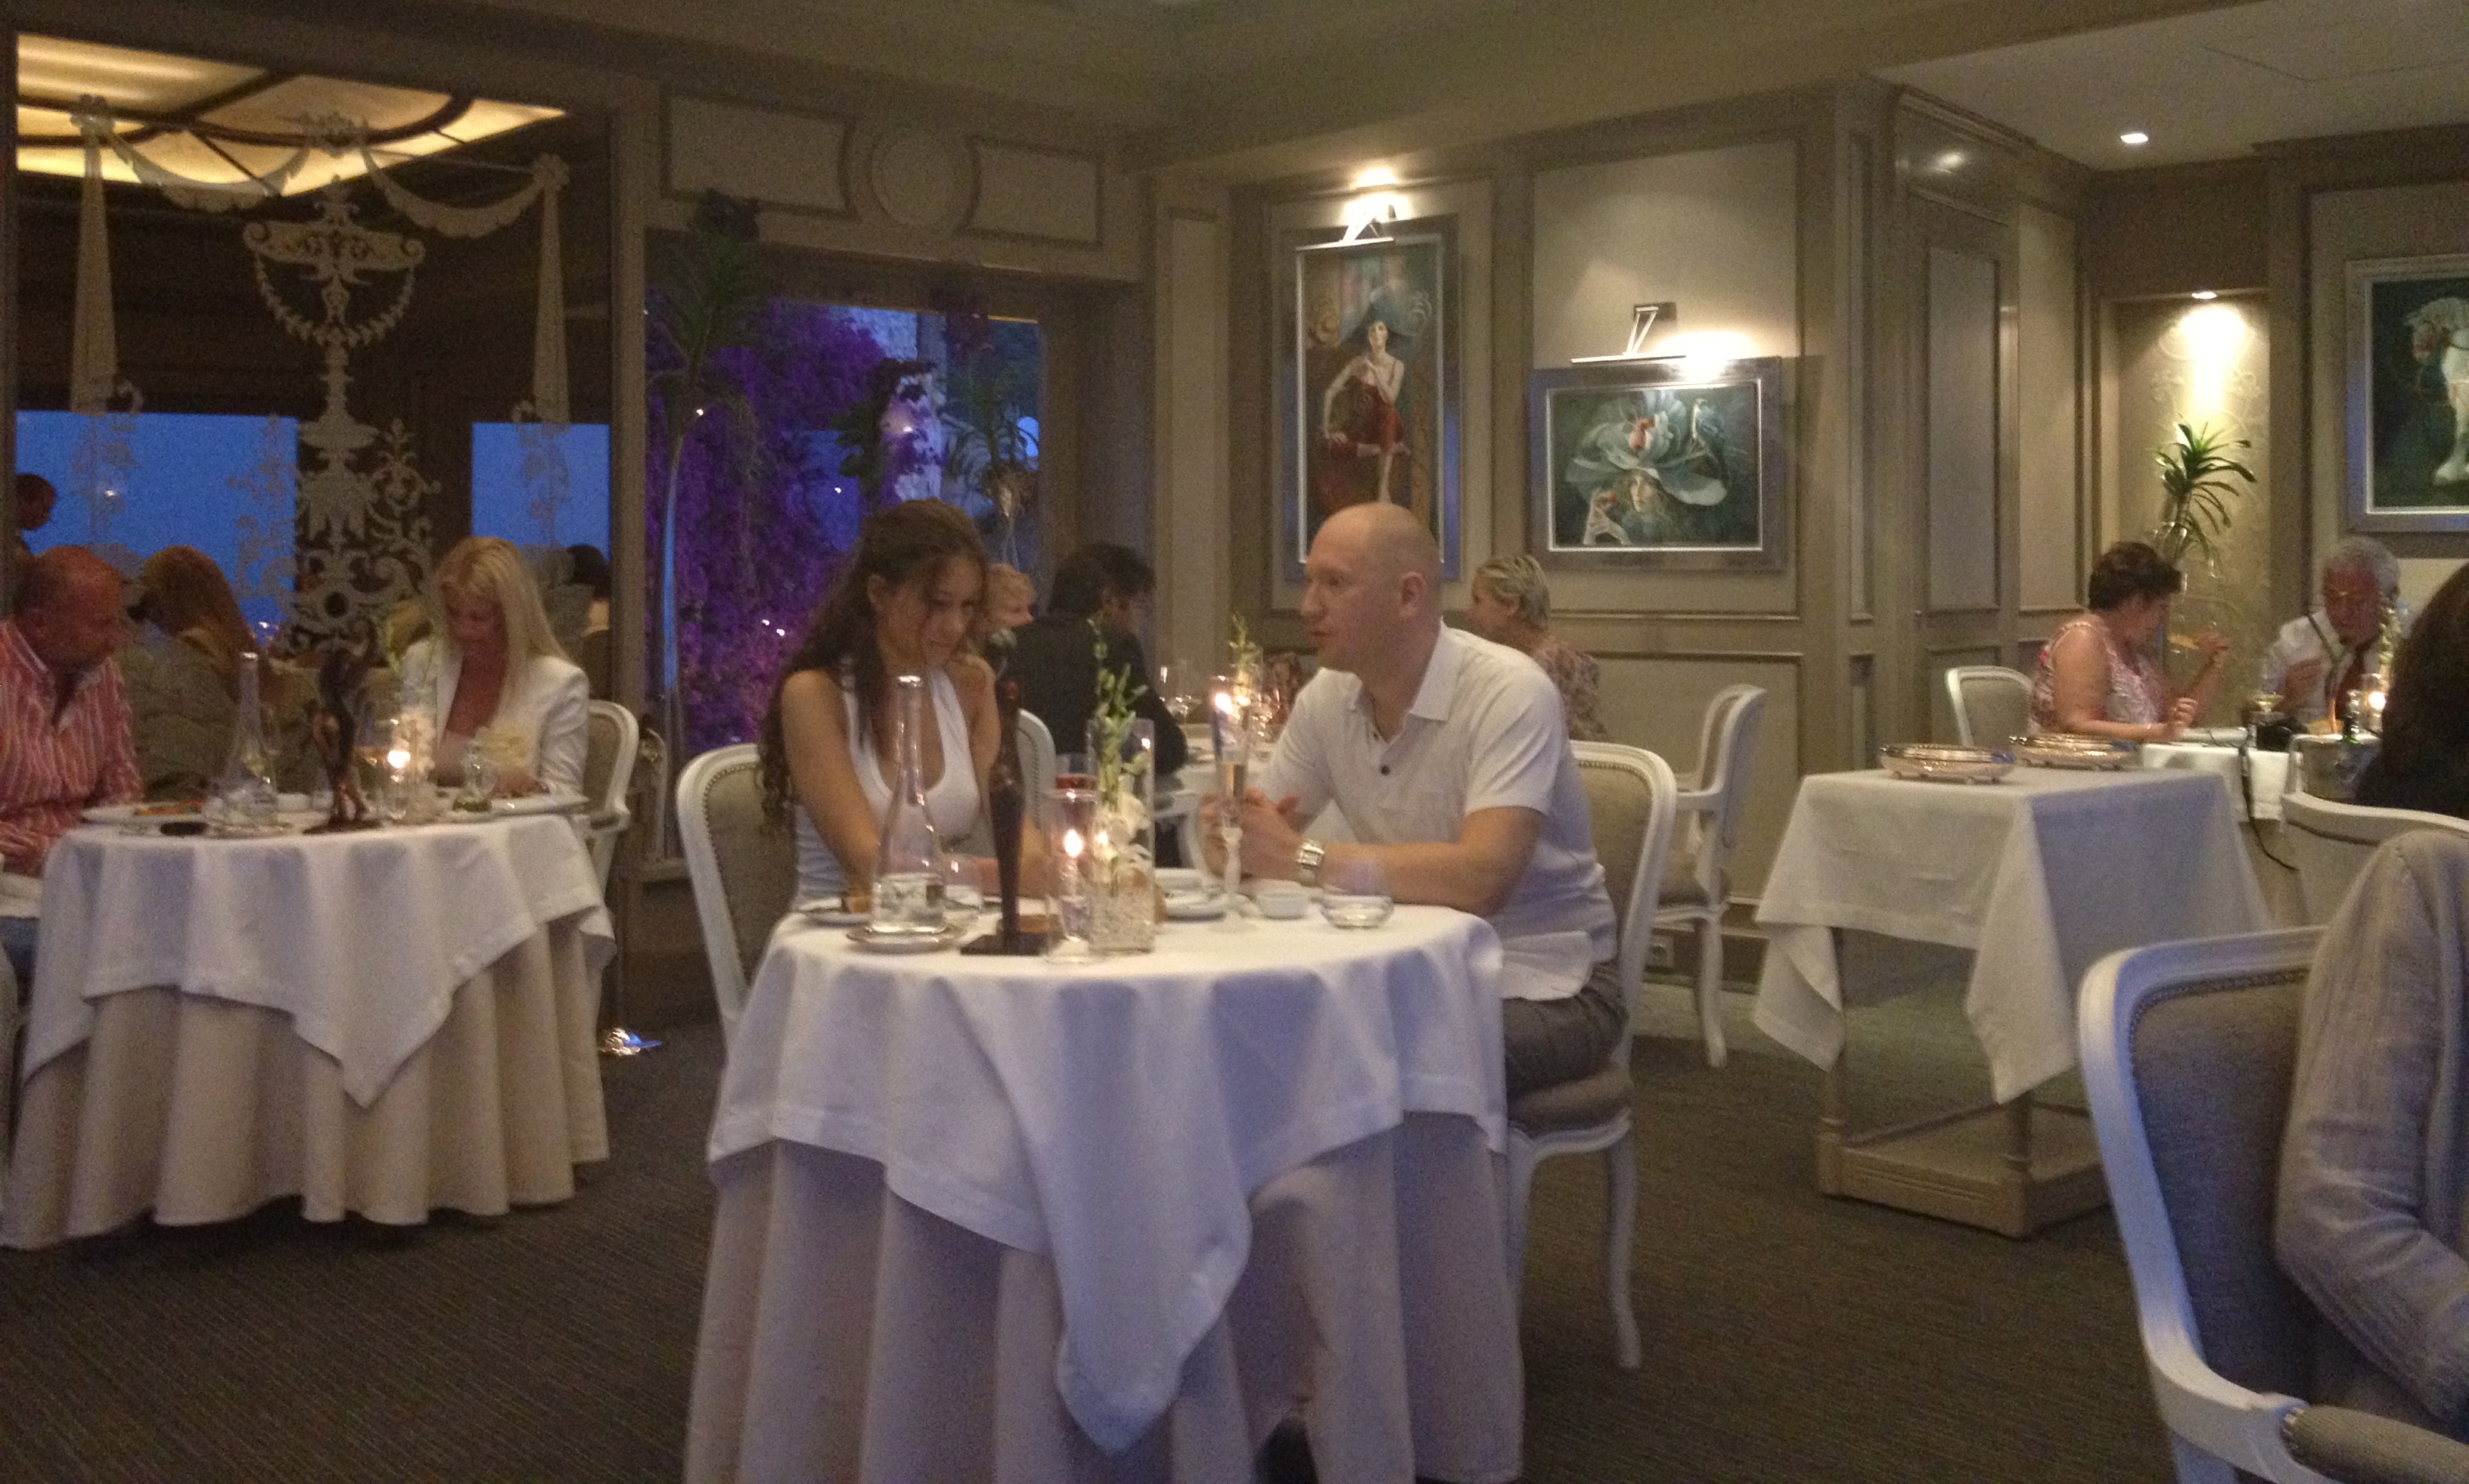 Ambience at Le Chevre d'Or gastronomic restaurant